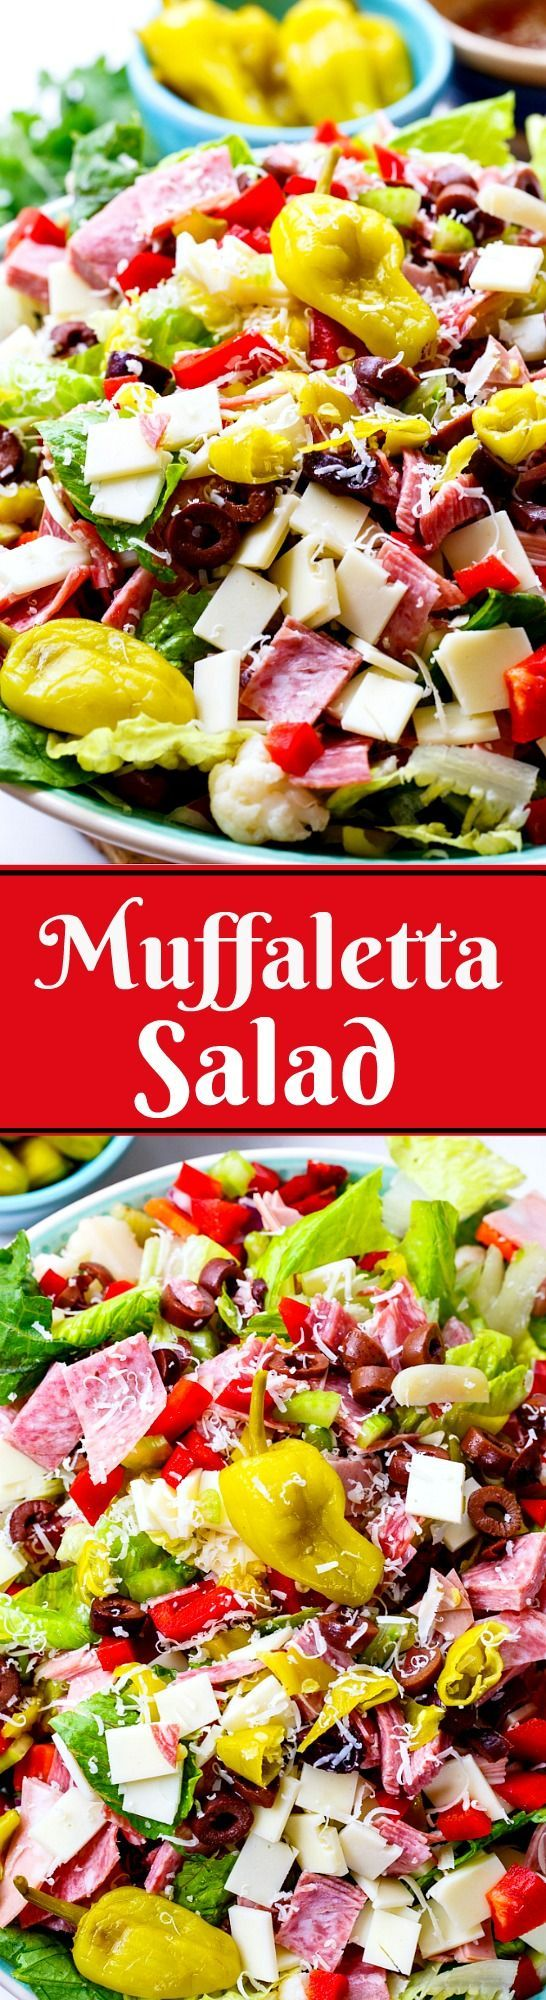 Muffaletta Salad. All the flavors of a muffaletta sandwich in a salad.